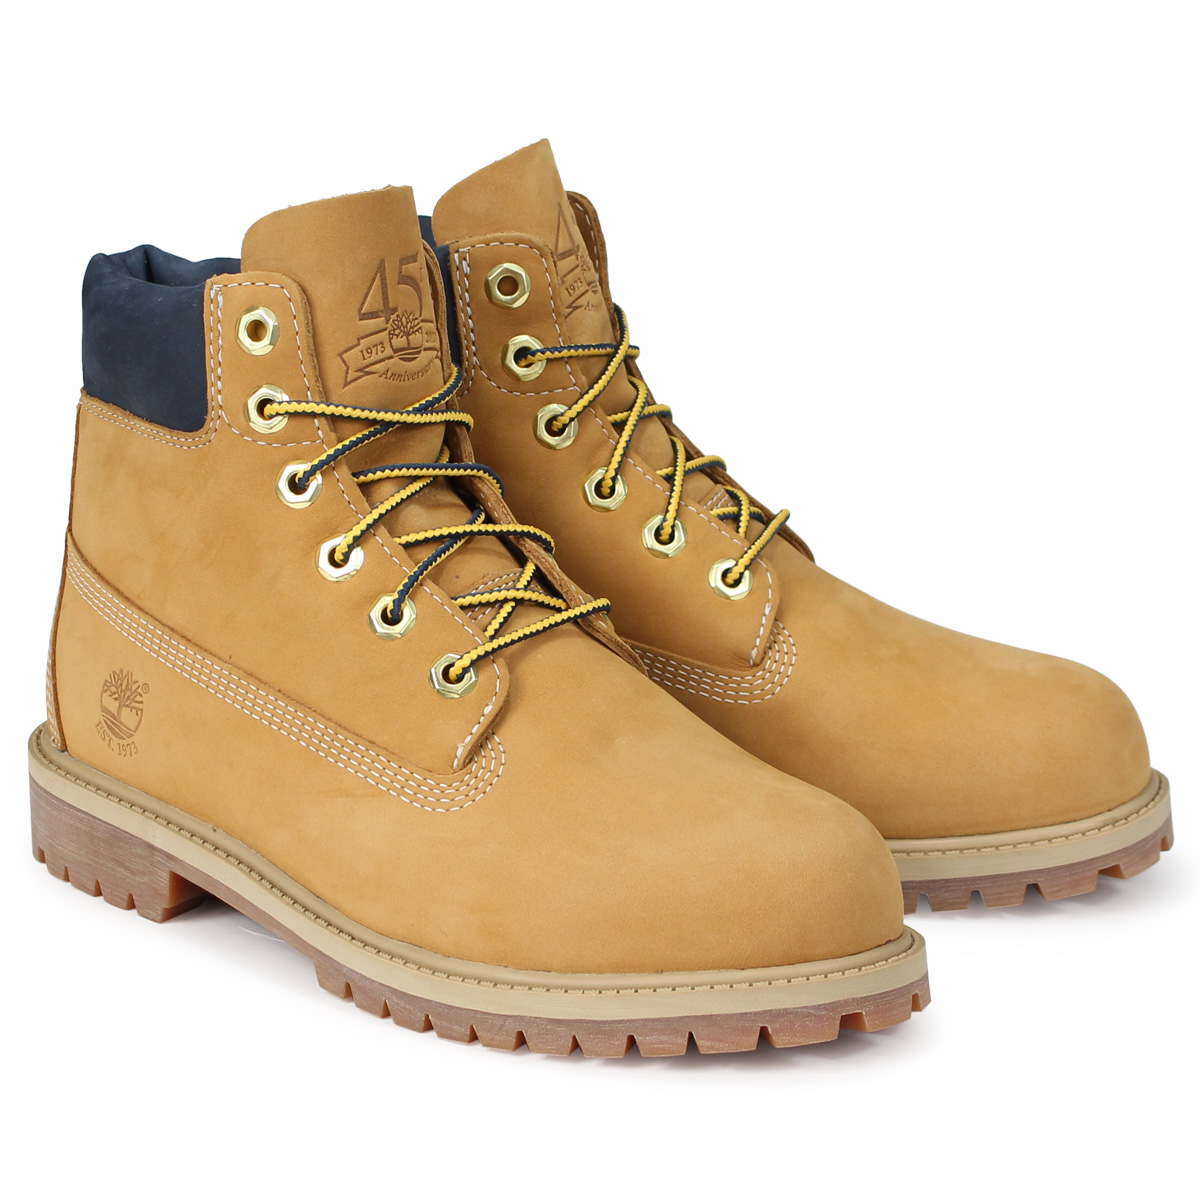 cheap for sale classic style undefeated x Timberland JUNIOR 6-INCH PREMIUM WATERPROOF BOOTS Timberland boots Lady's 6  inches kids A1VE5 W ワイズウィート